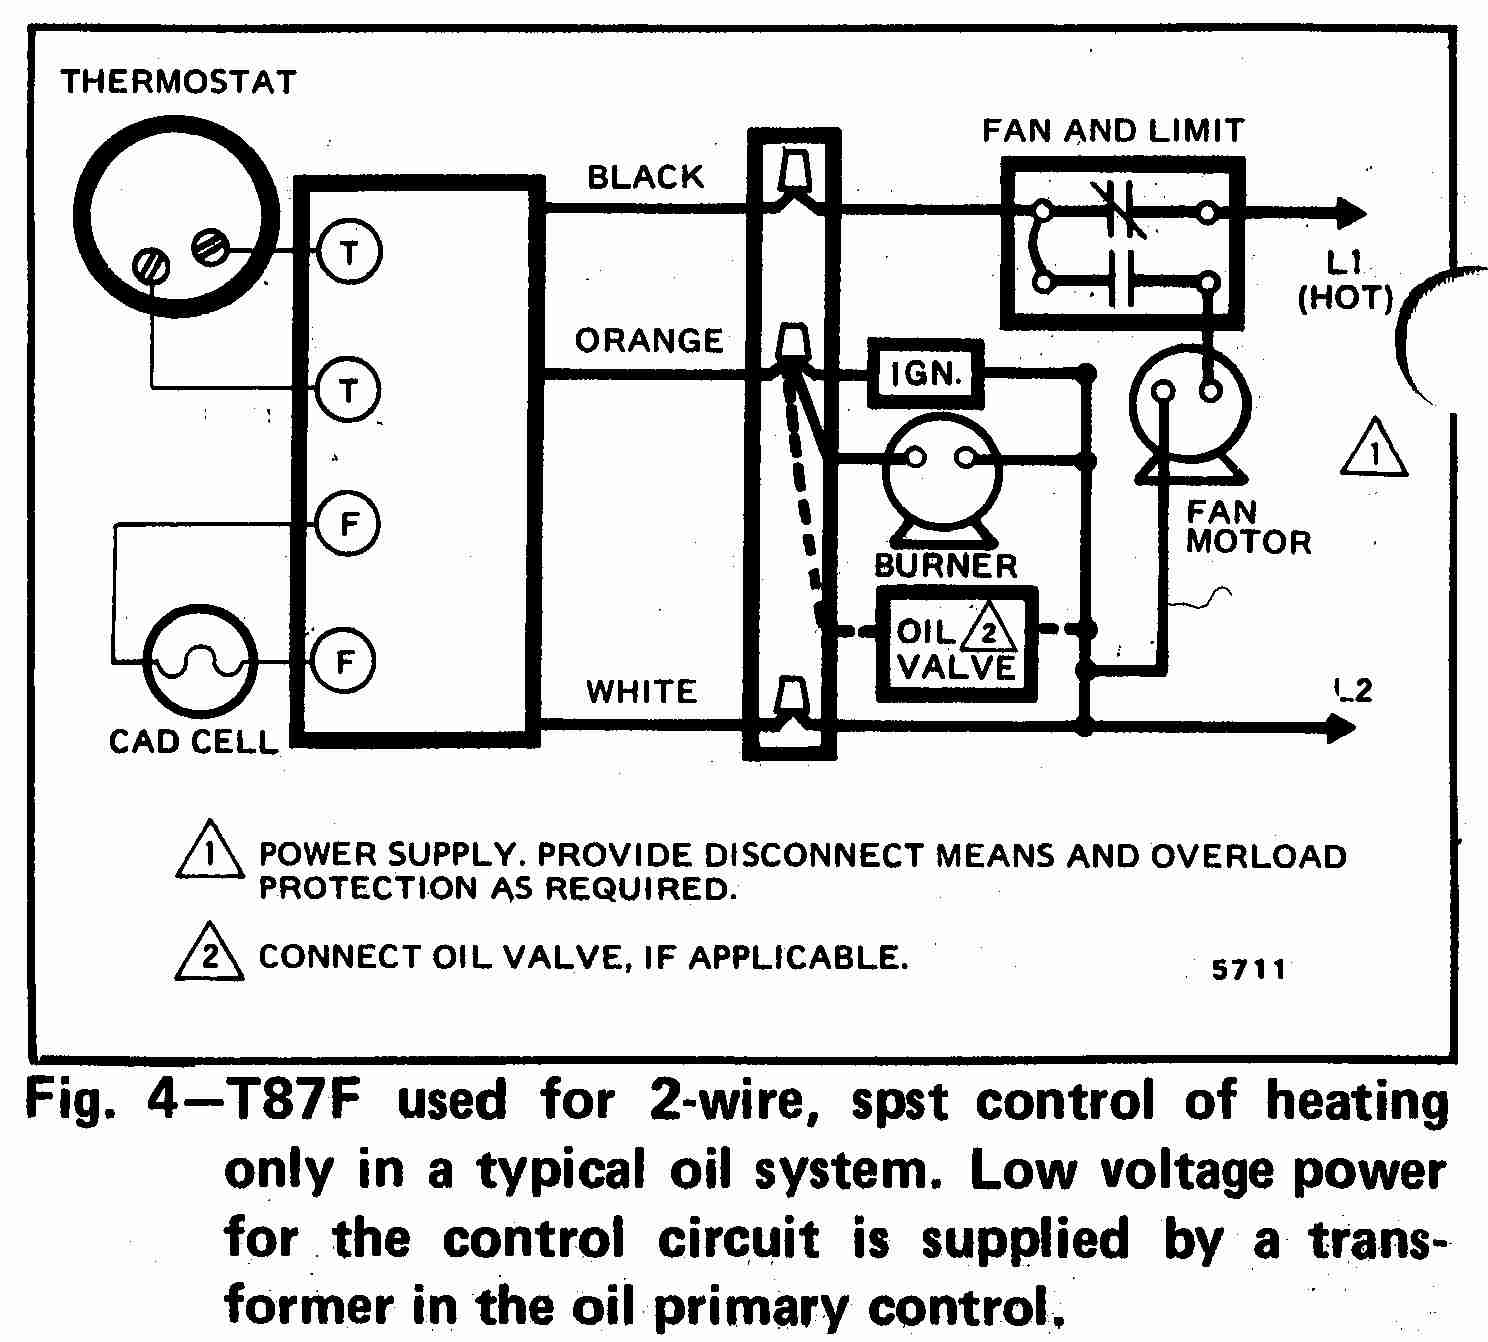 TT_T87F_0002_2W_DJF honeywell aquastat wiring diagram honeywell thermostat wiring honeywell round thermostat wiring diagram at cos-gaming.co